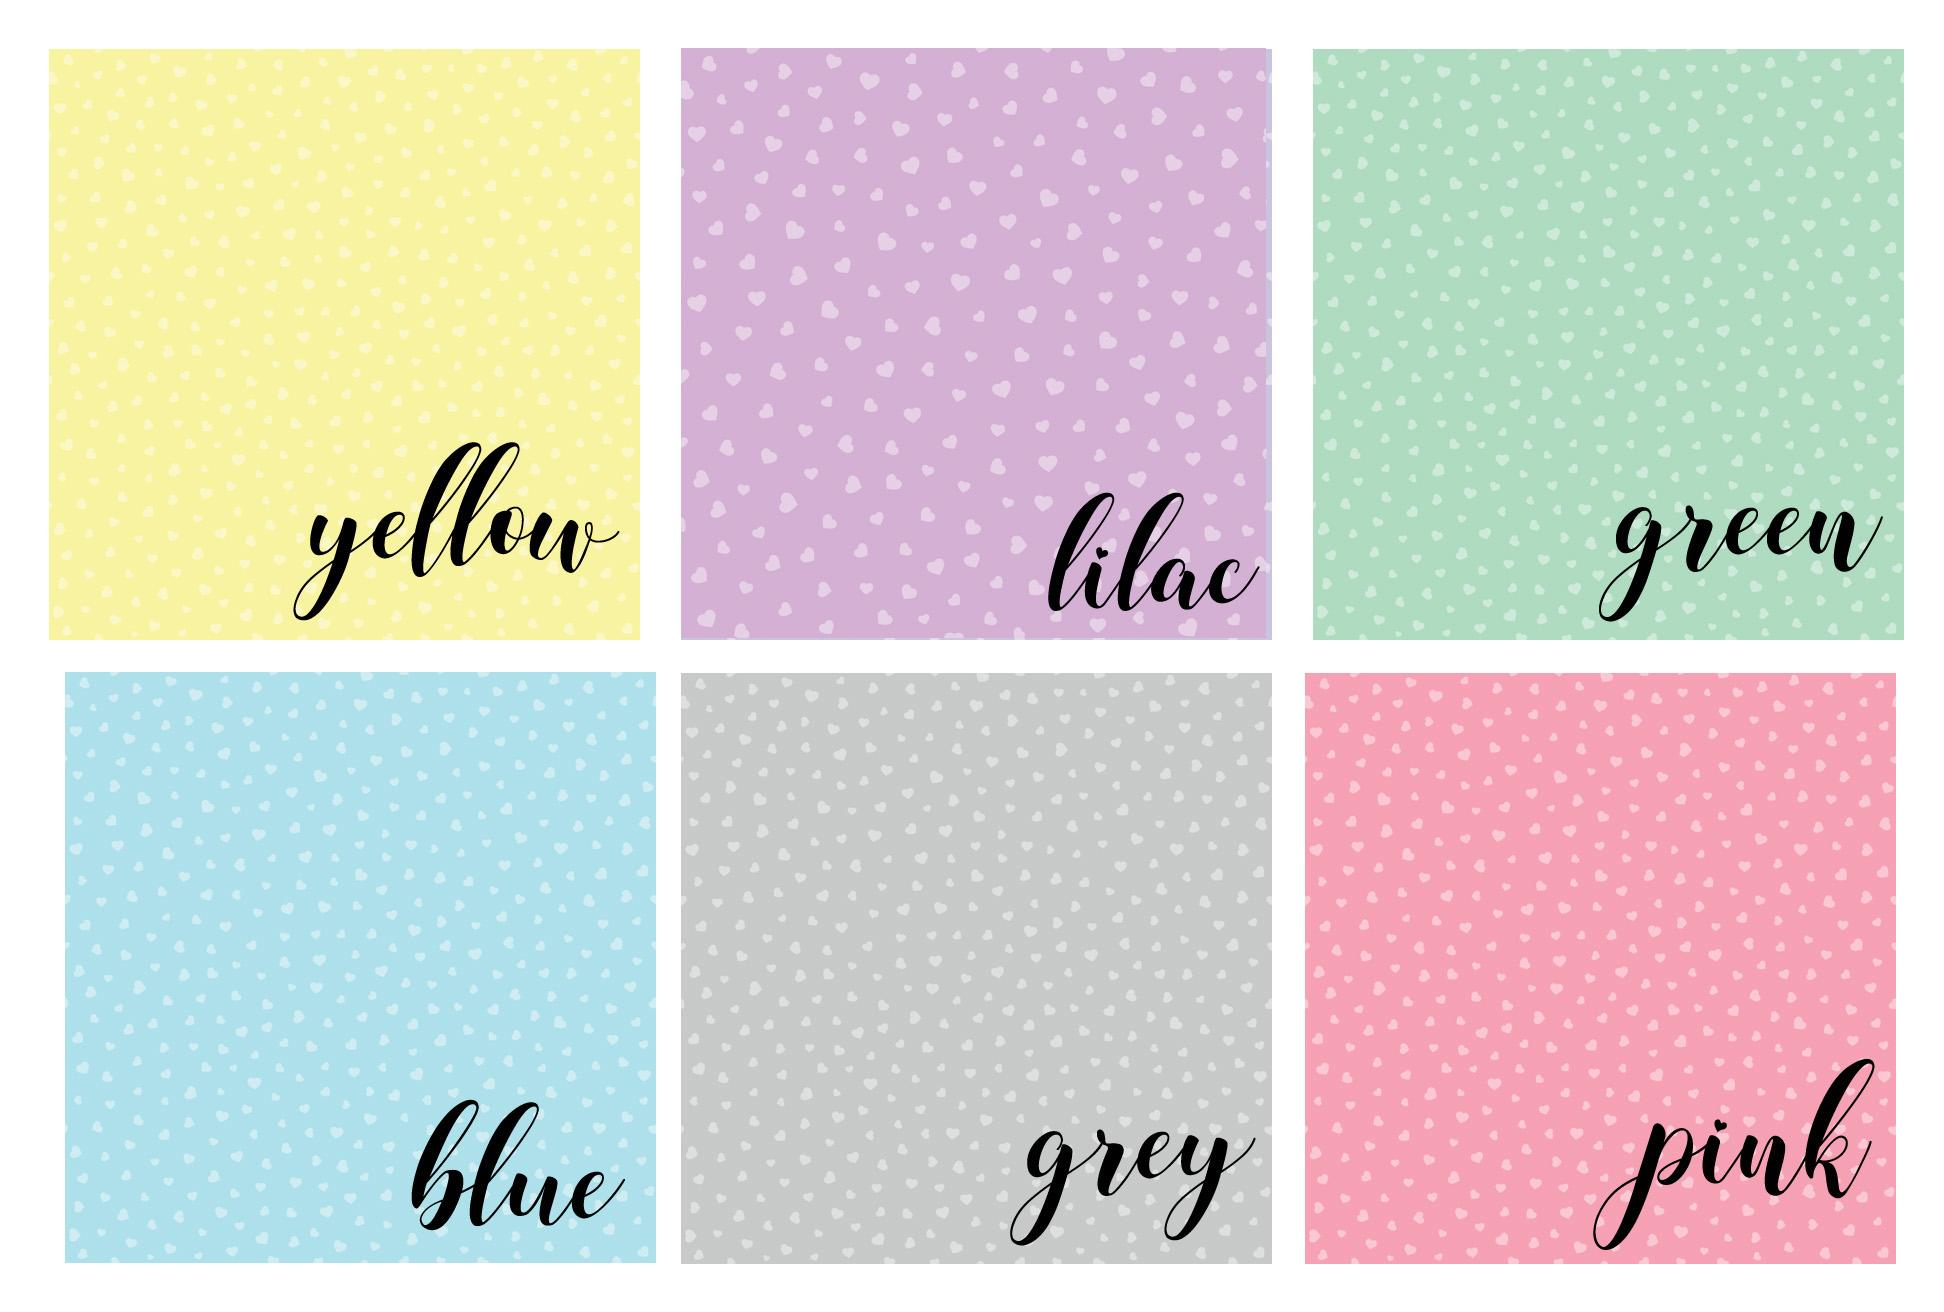 Label colour choices